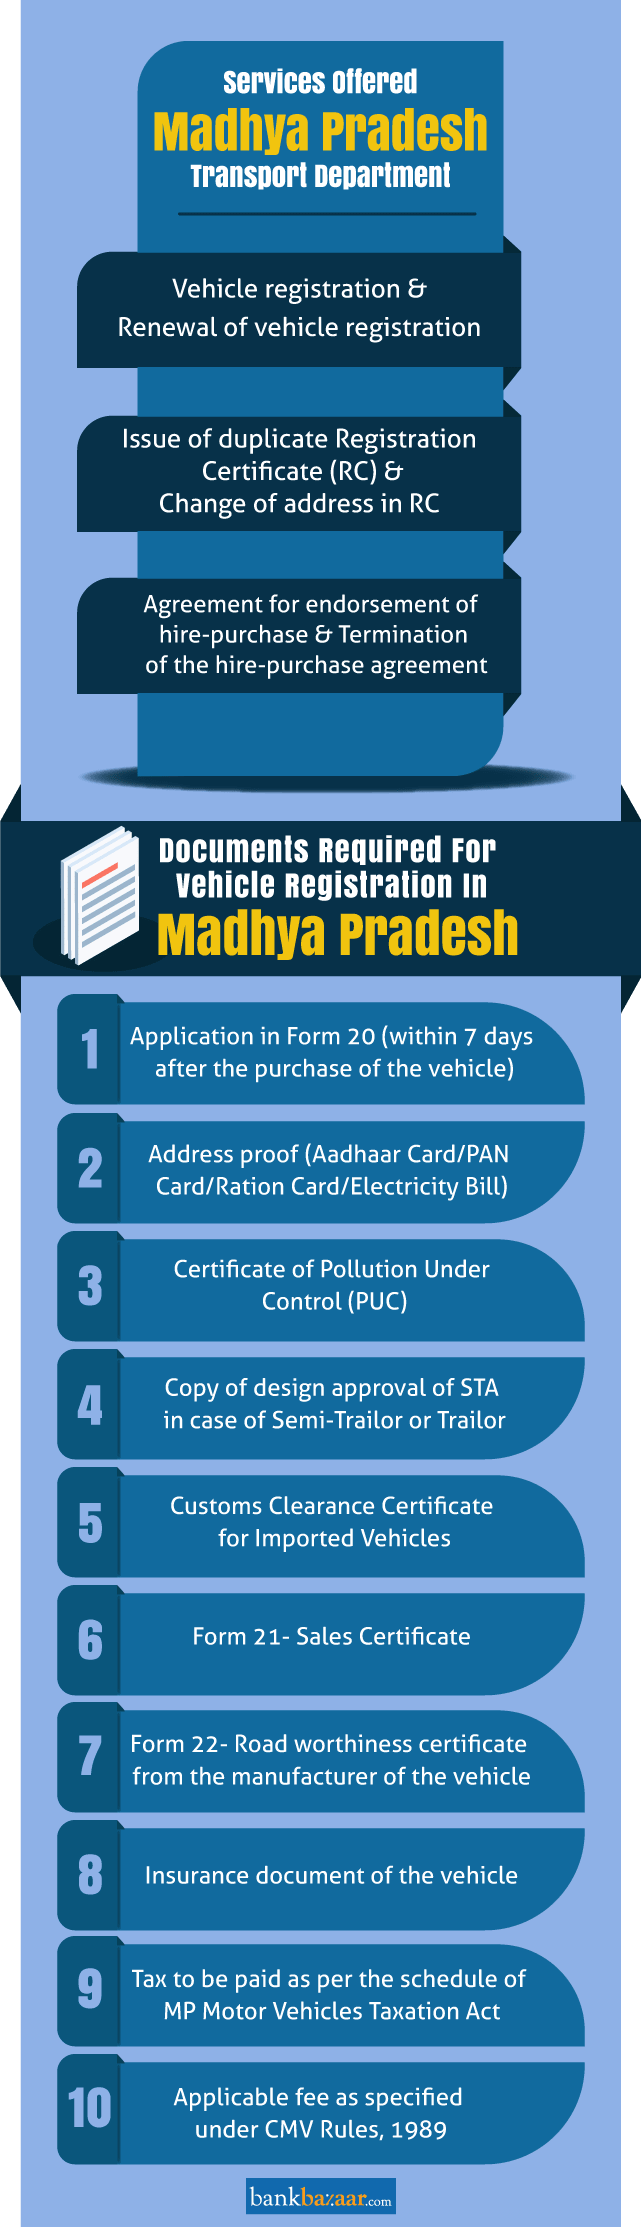 Services offered Madhya Pradesh Transport Department